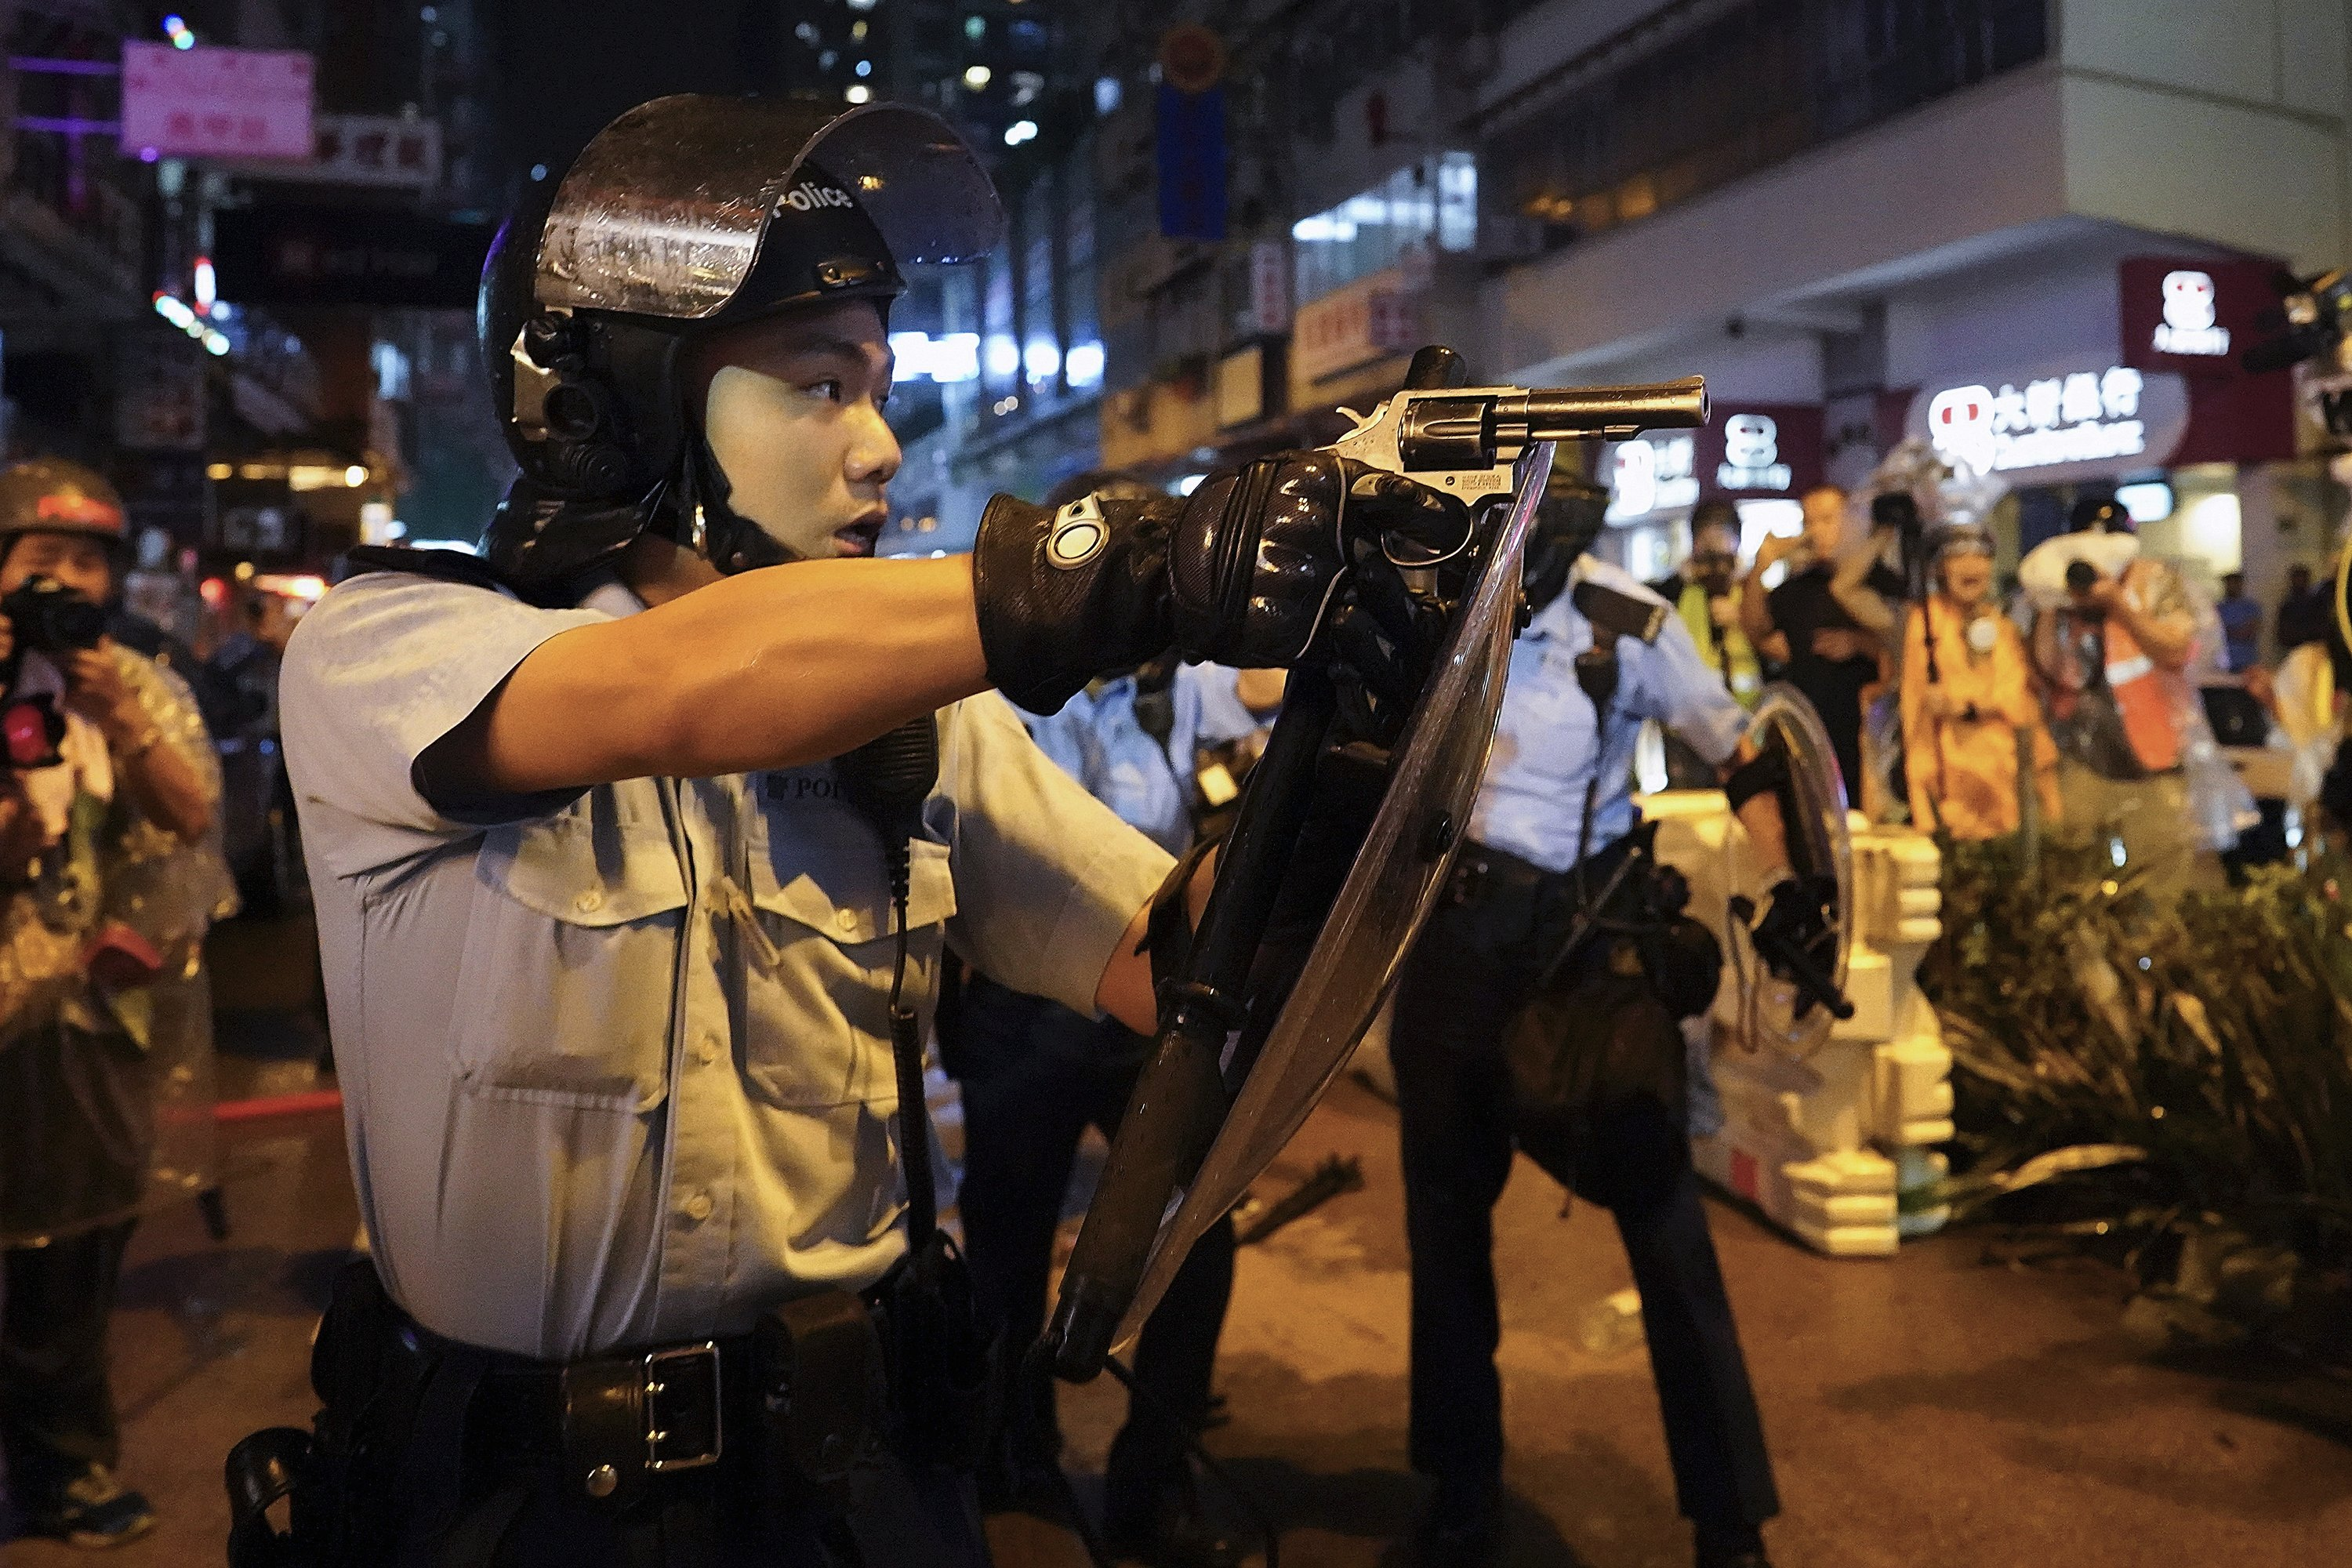 Hong Kong police draw guns, arrest 36 in latest protest